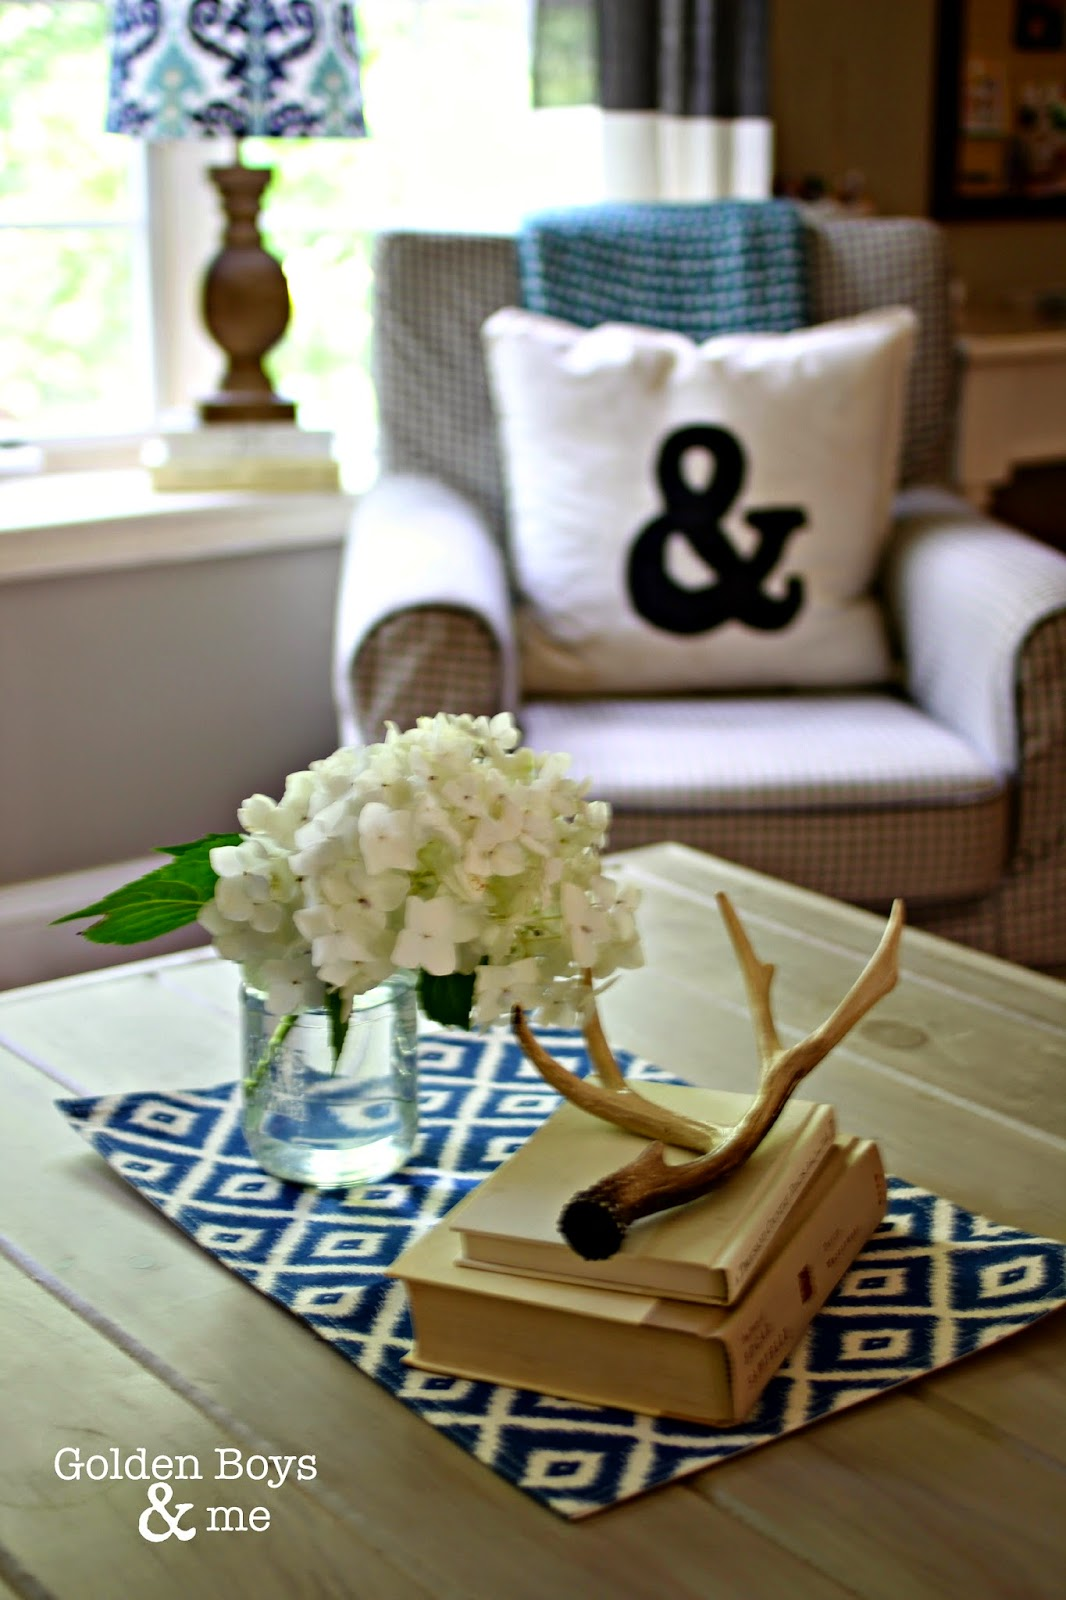 Antler, books, and hydrangea with ampersand throw pillow-www.goldenboysandme.com